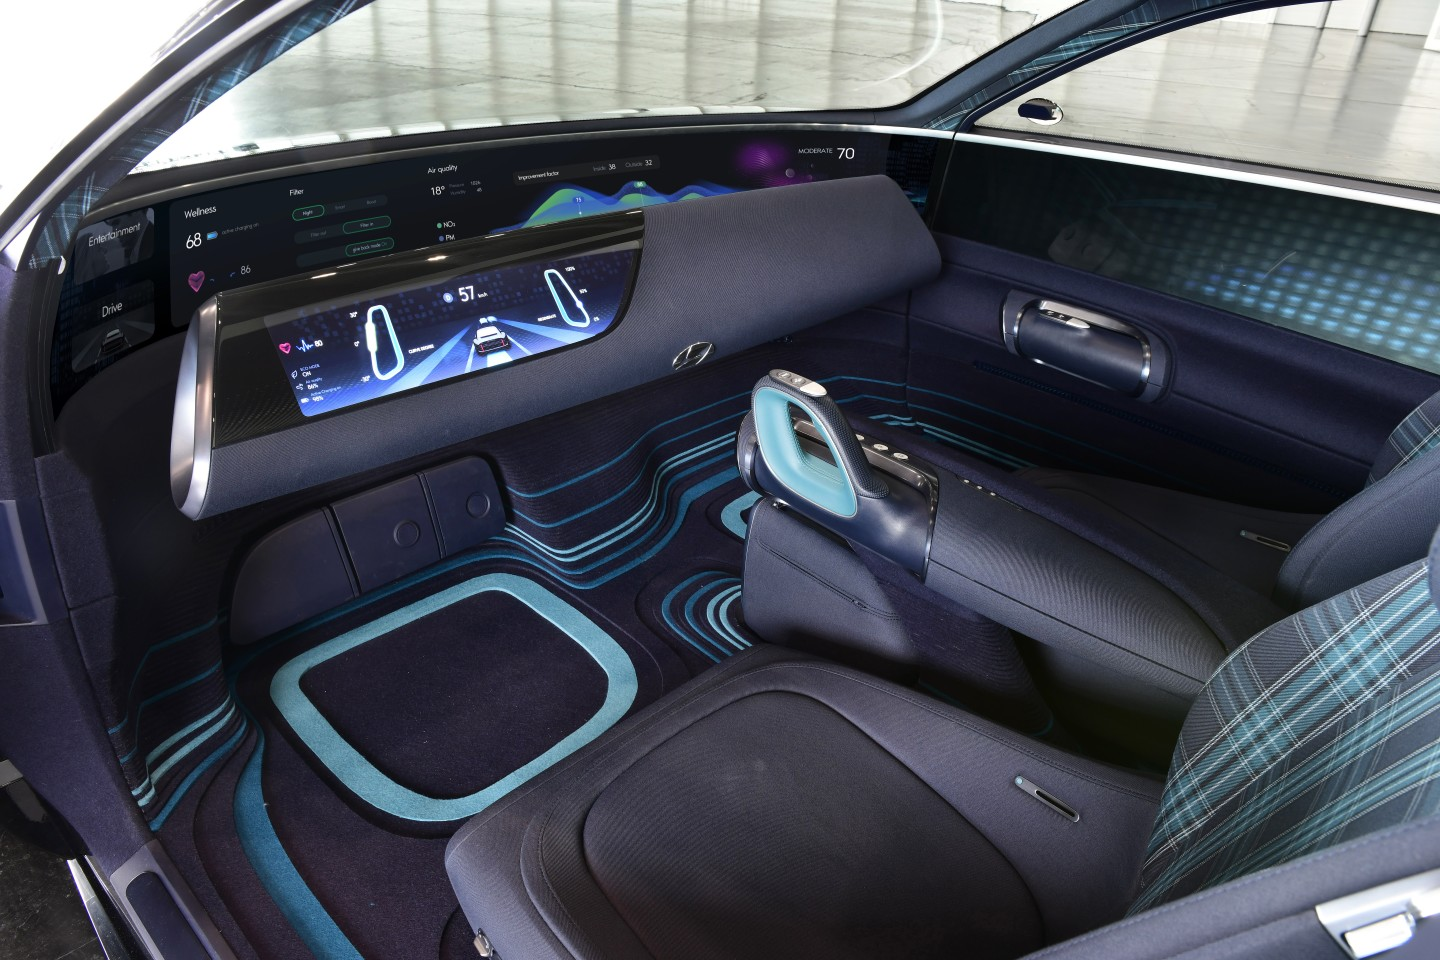 The interior is not like any car you've seen before